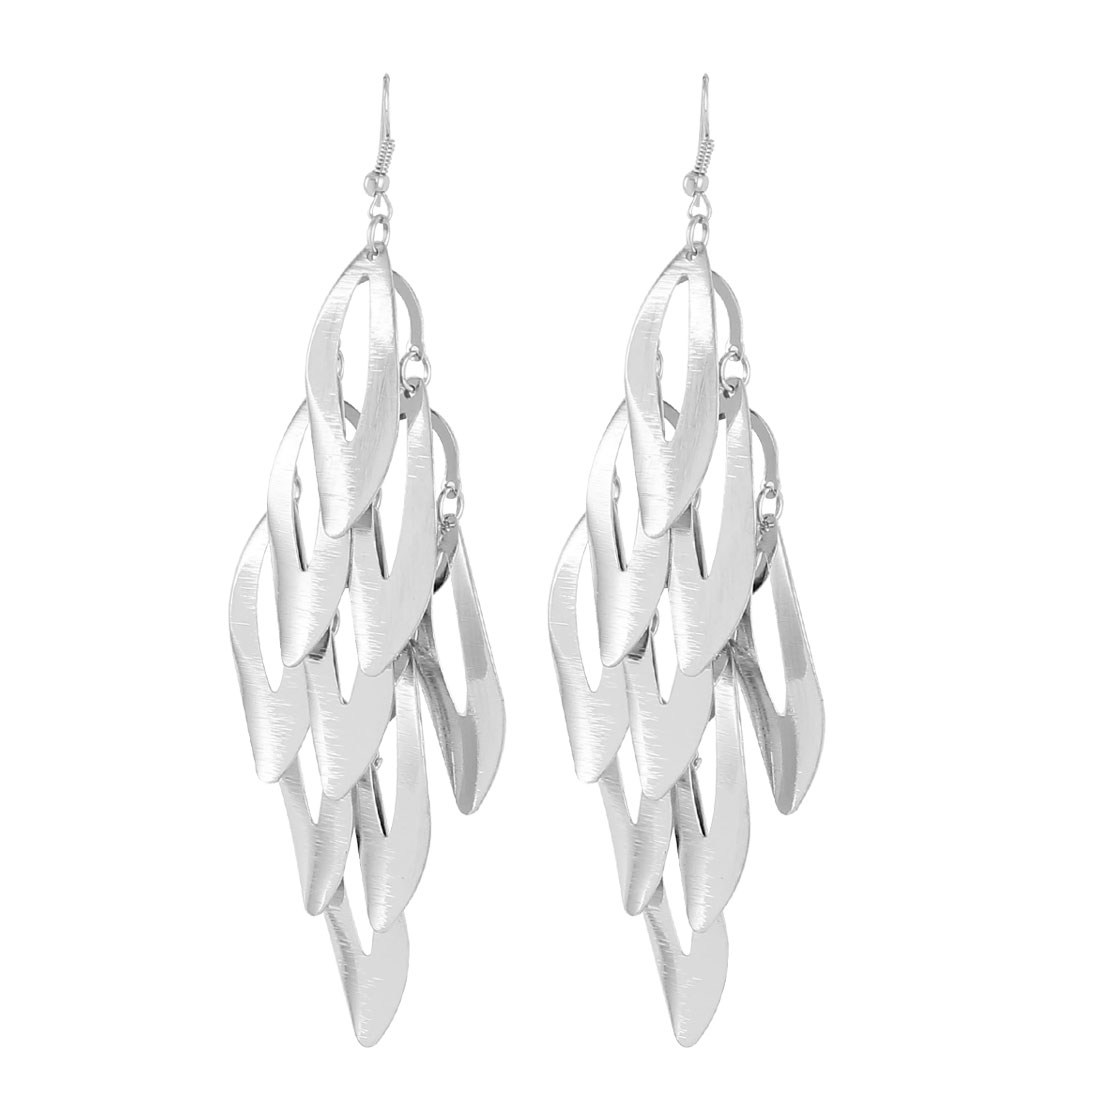 Lady Hollow Olive Shape Dangle Chandelier Fish Hook Earrings Silver Tone Pair